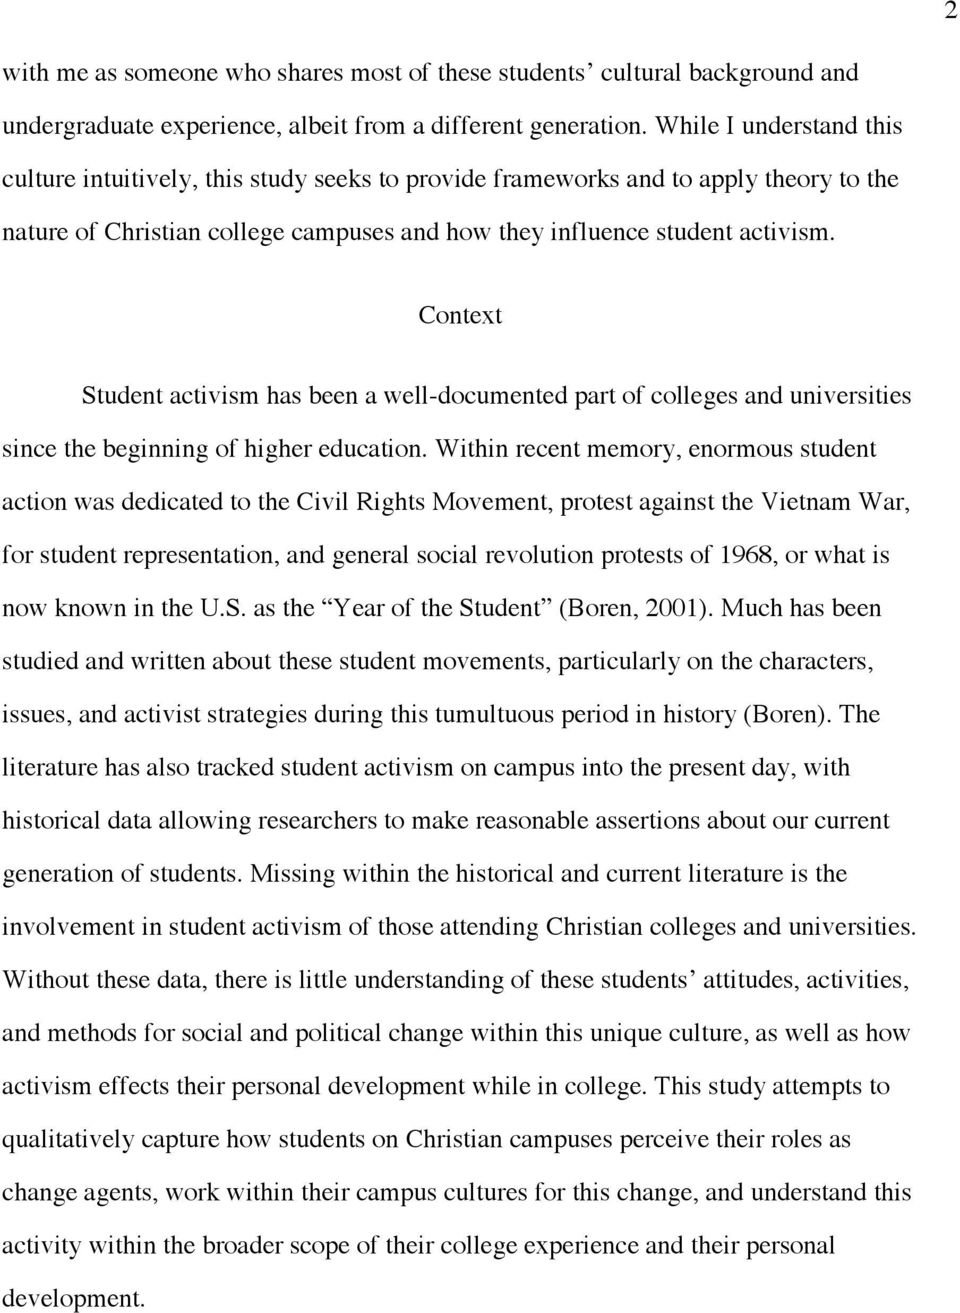 10 Attractive The Idea Of A Christian College the impact of institutional culture on student activism a multi 2020